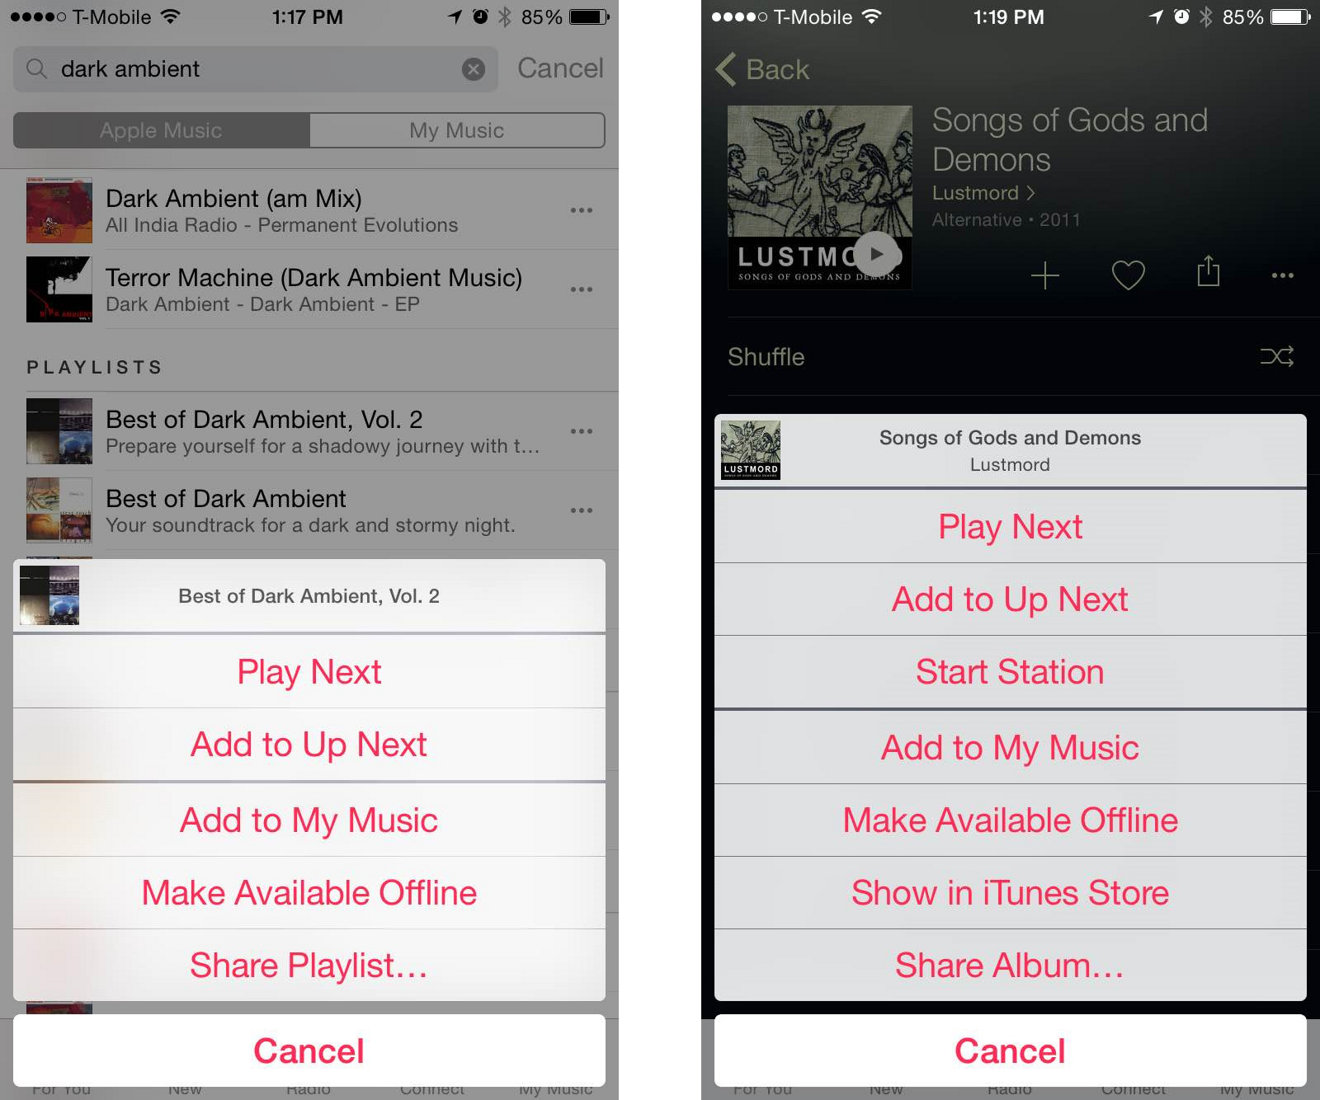 How To Save Apple Music Songs Albums Playlists For Offline Listening Appleinsider